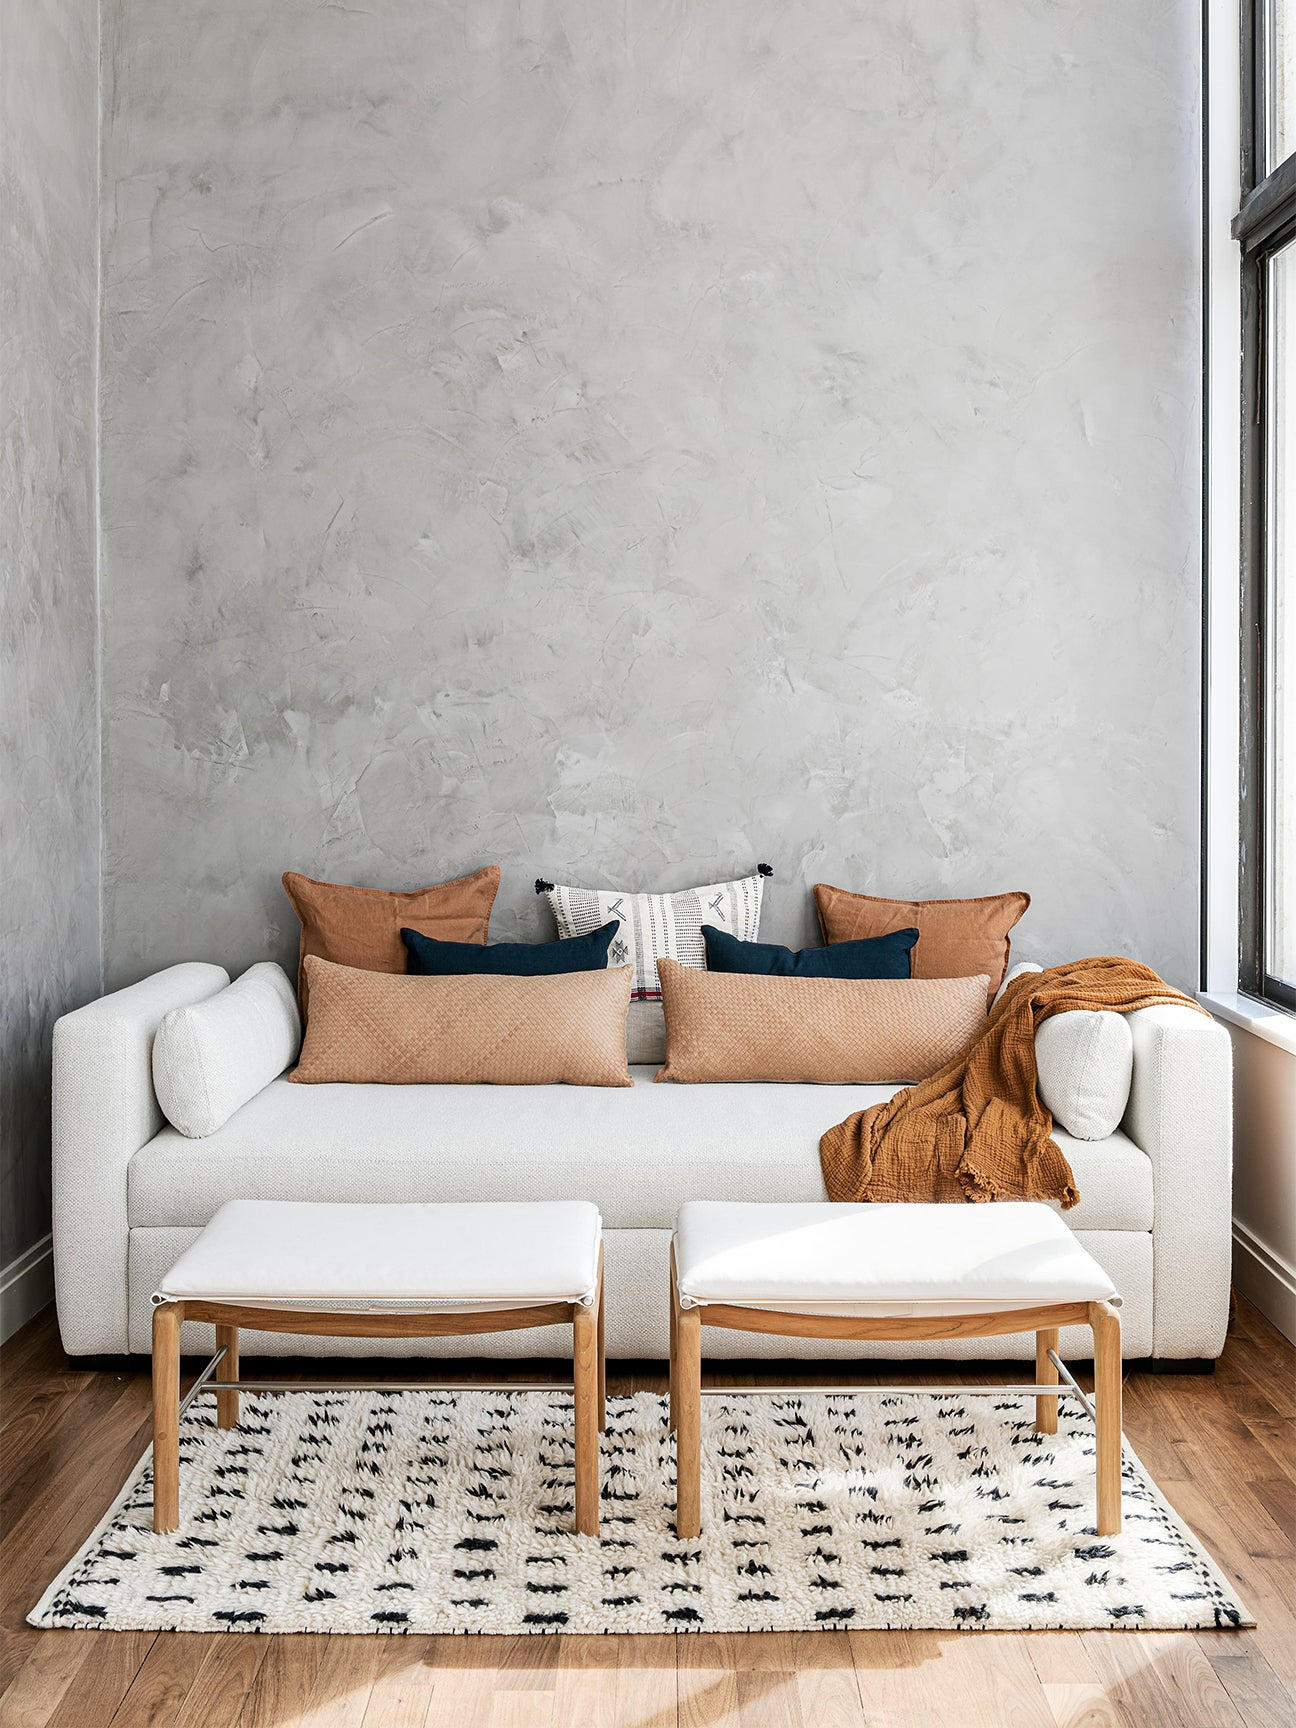 3 Small Living Room Layouts That'll Inspire You to Downsize